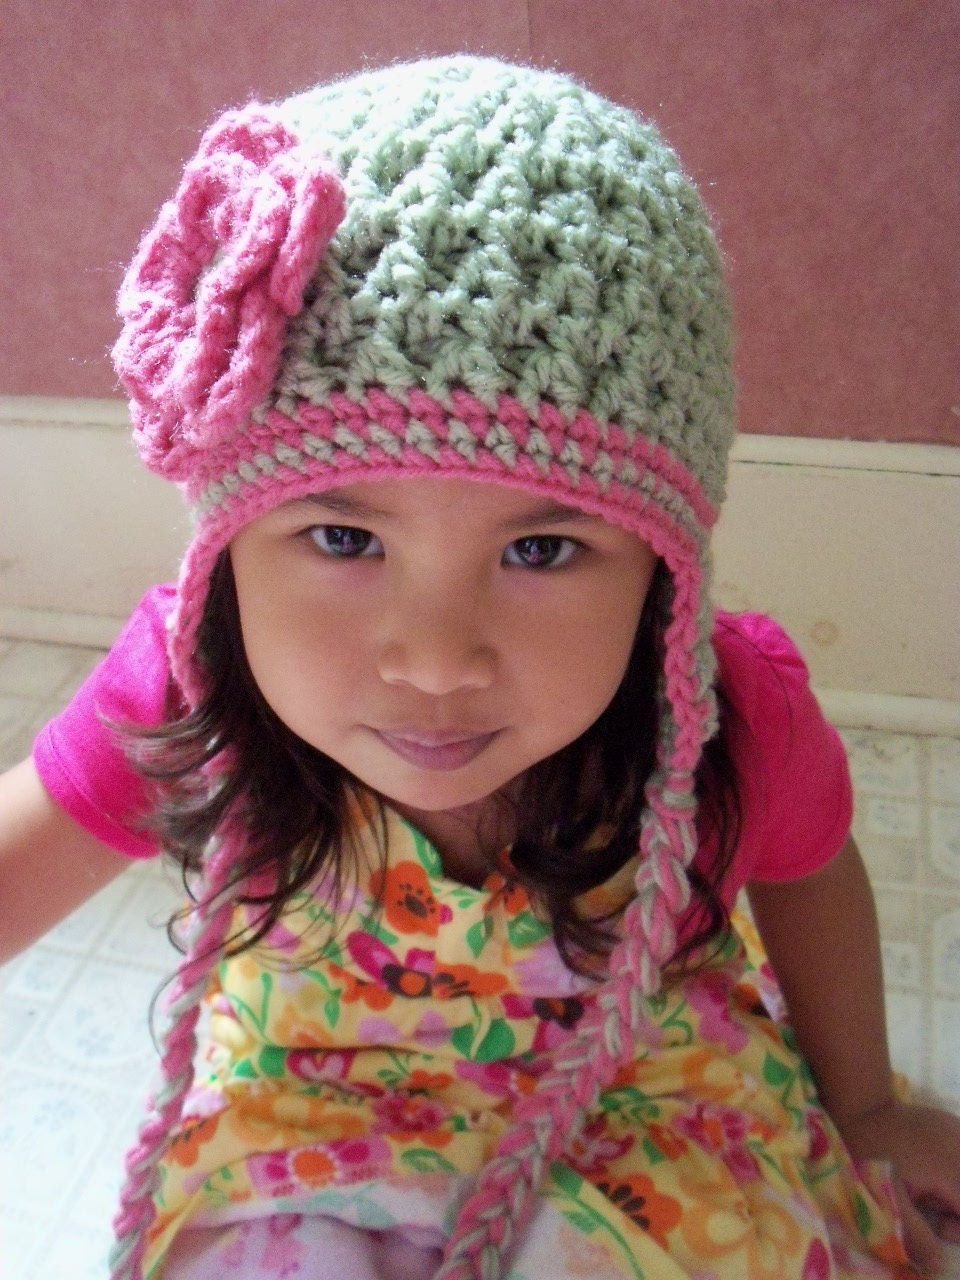 Crochet Patterns Free Childrens Hats : Crochet Children HatToddler Hat Baby Girl Hat Crochet